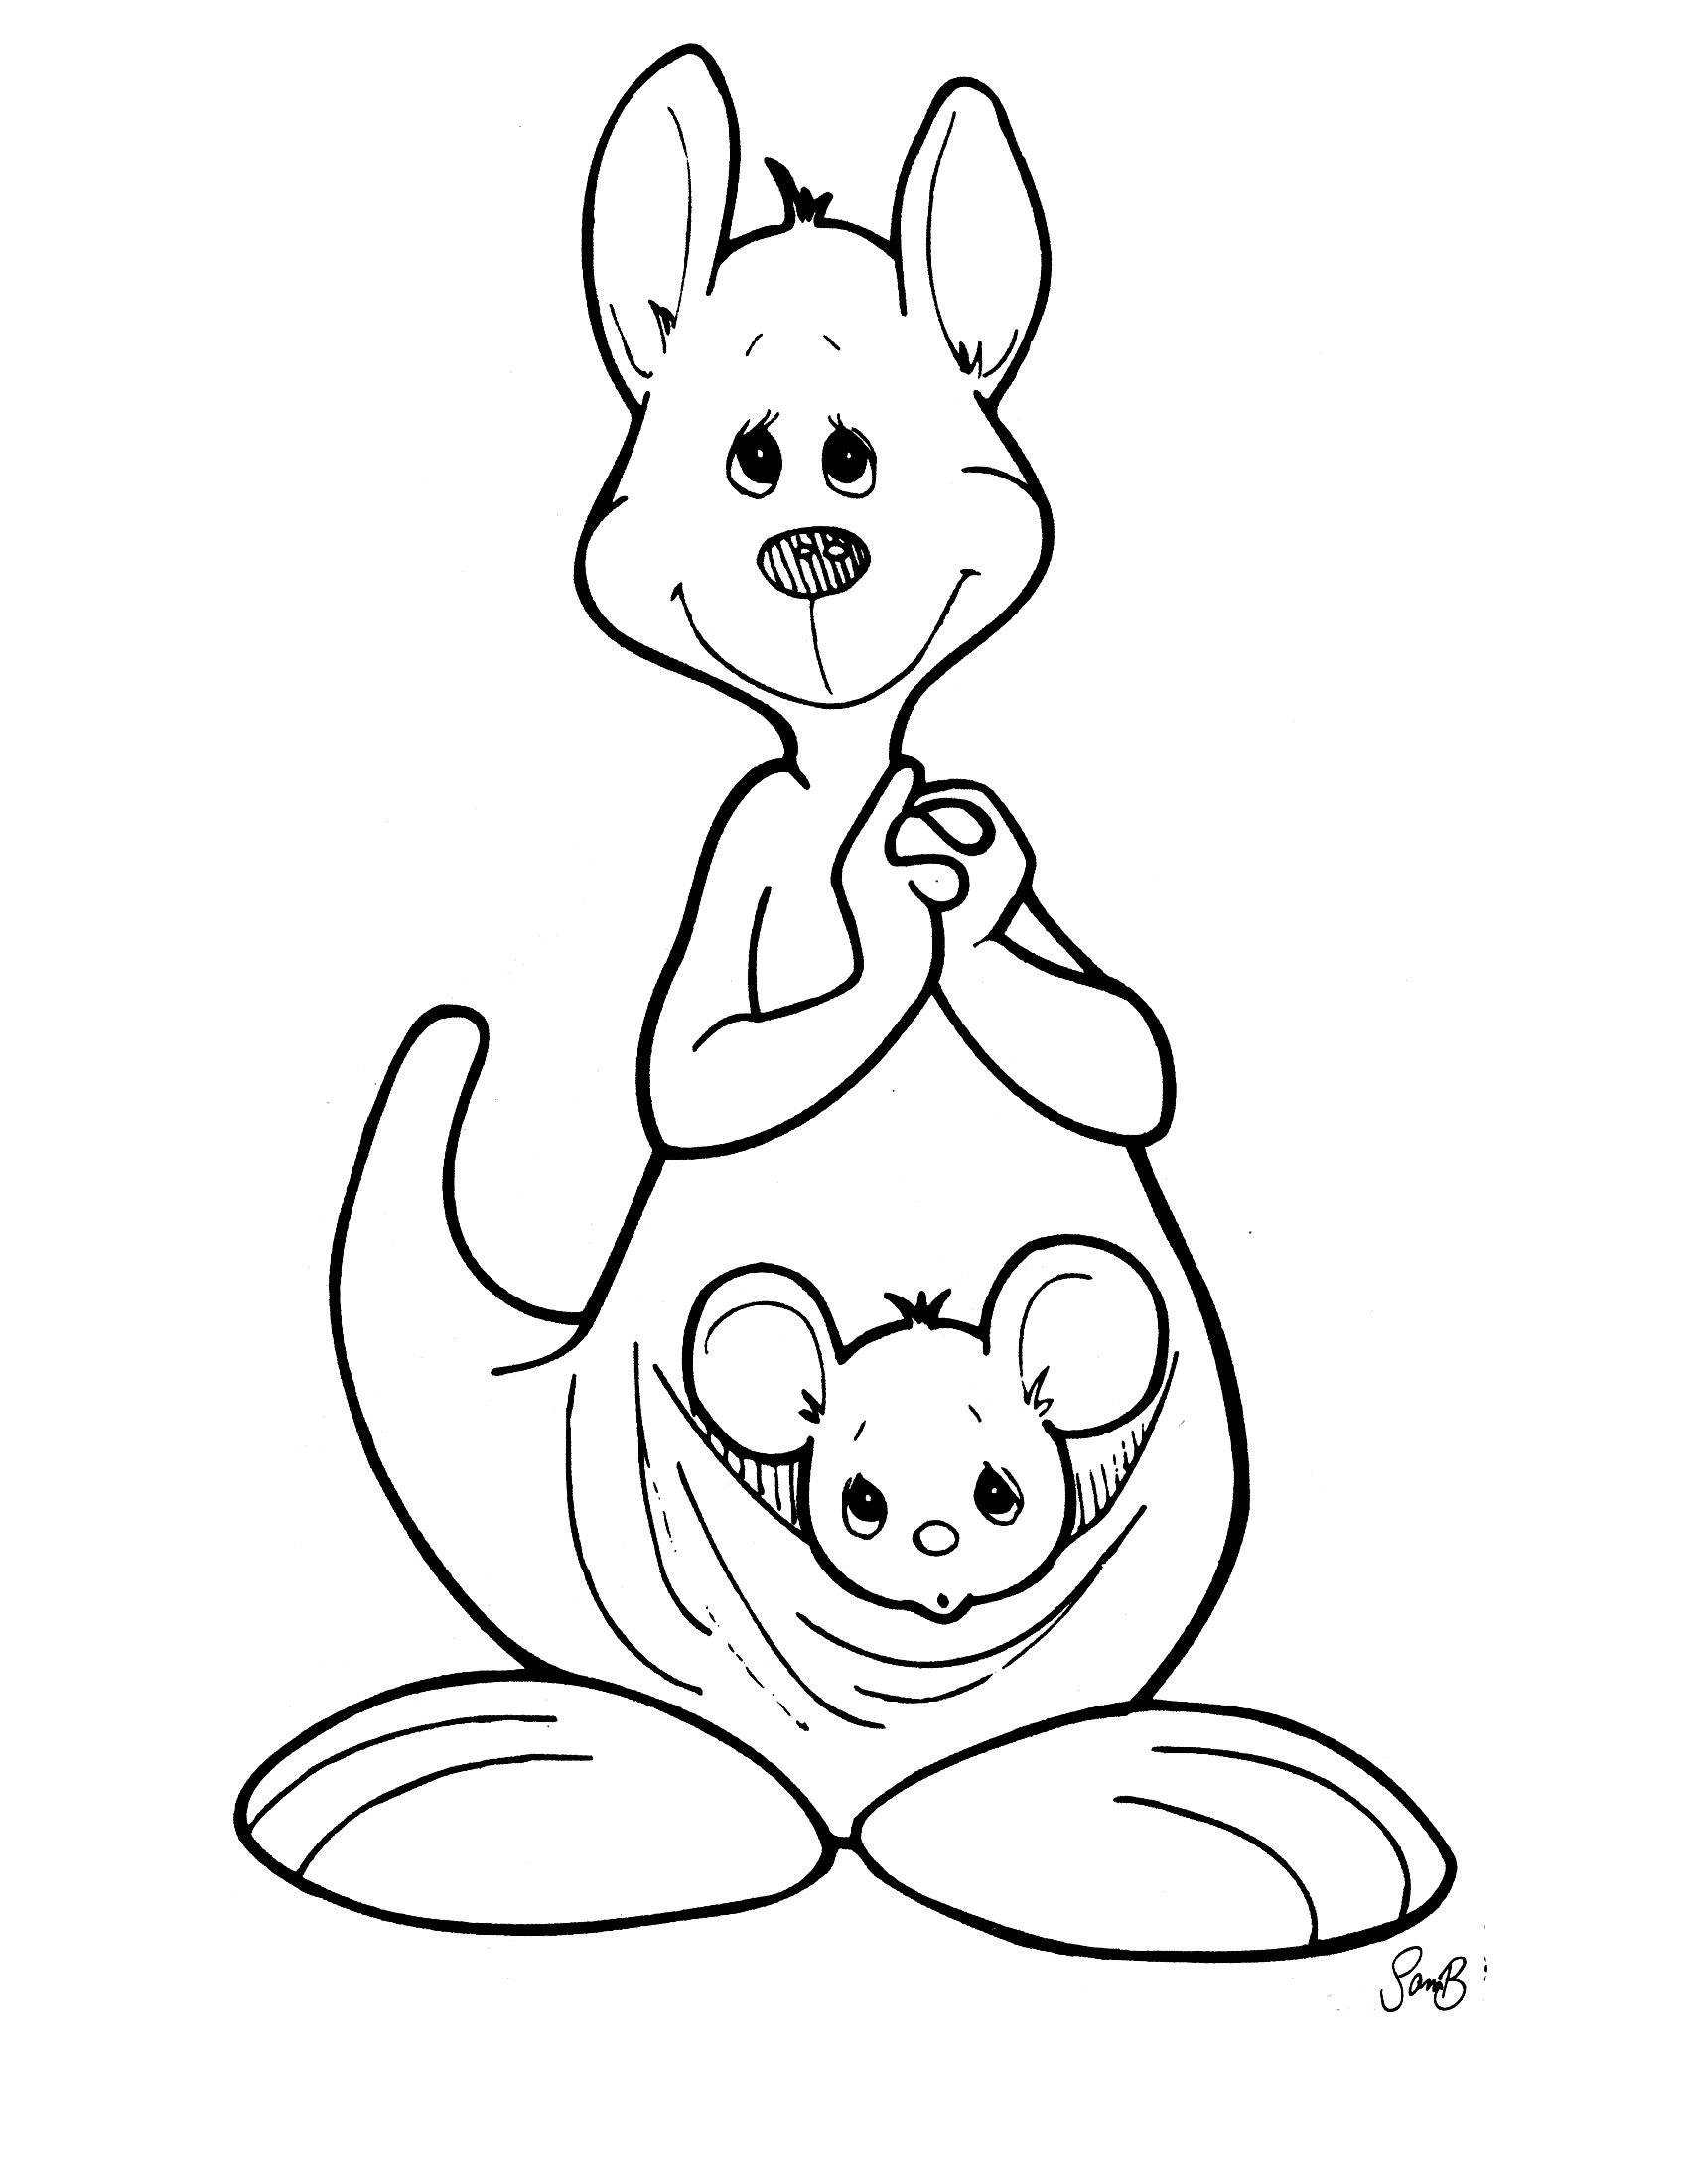 Pritable Precious Moments Coloring Pages